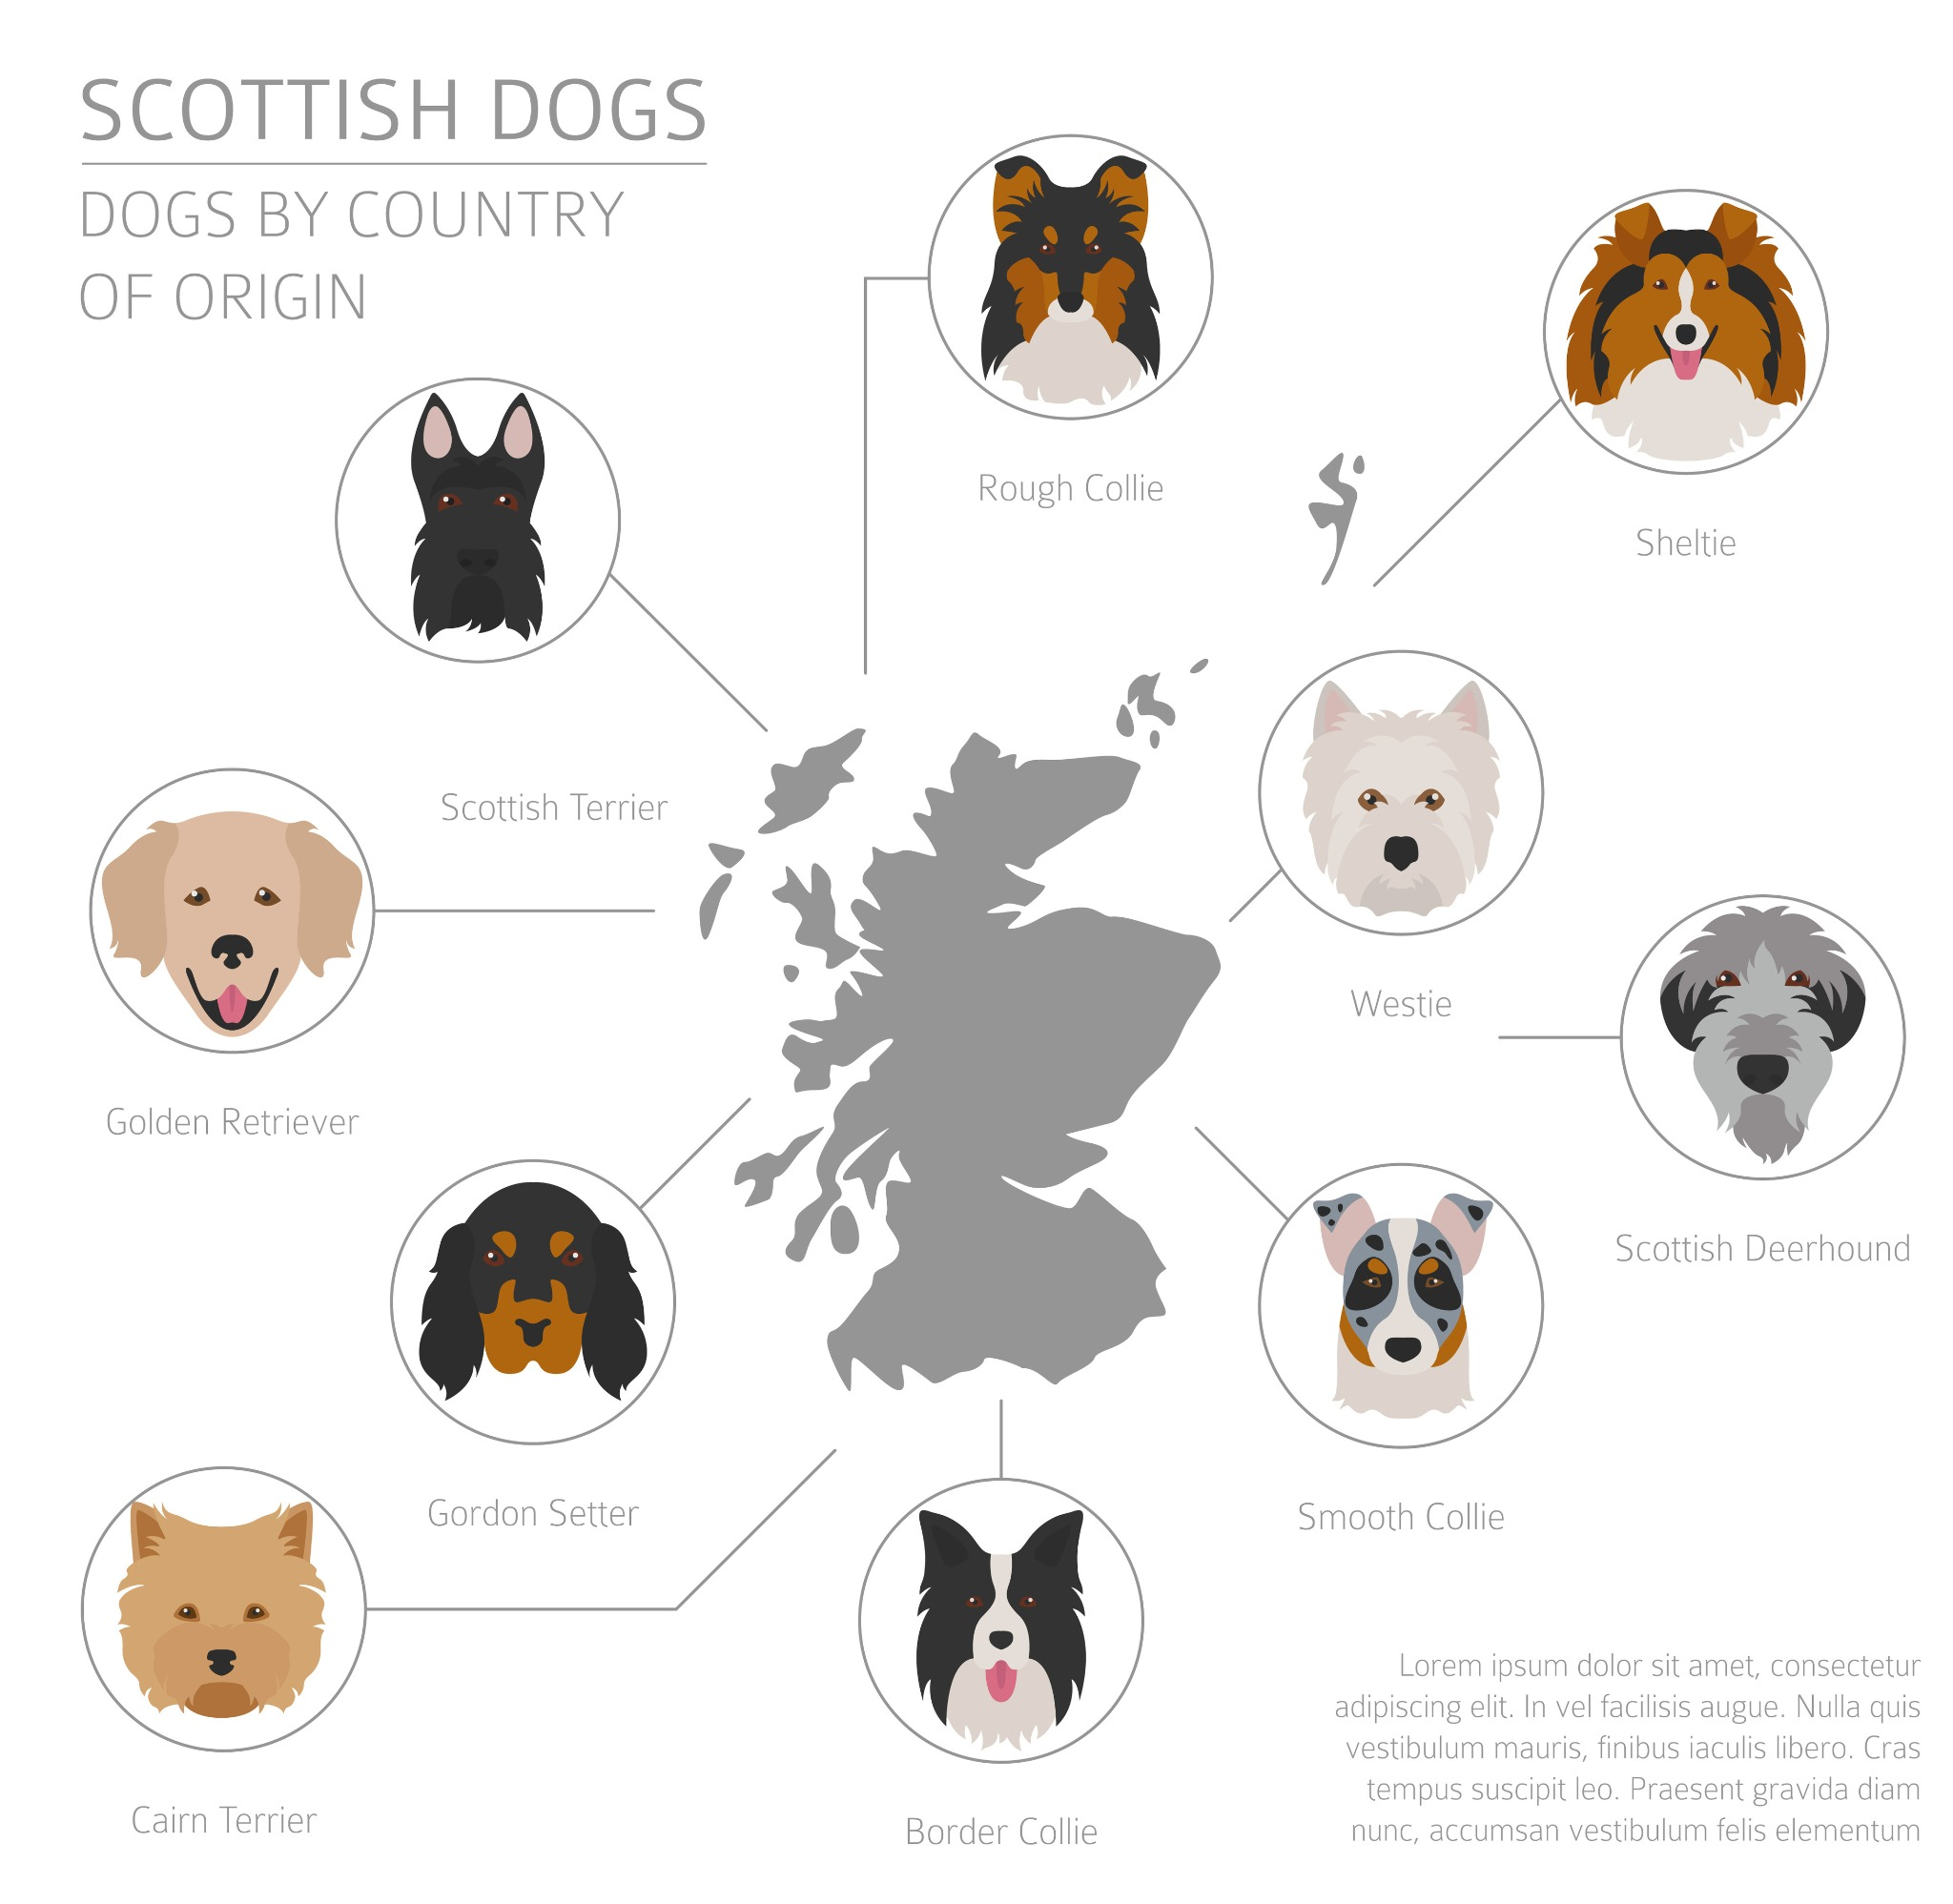 A diagram of the many dog breeds that originated in Scotland.